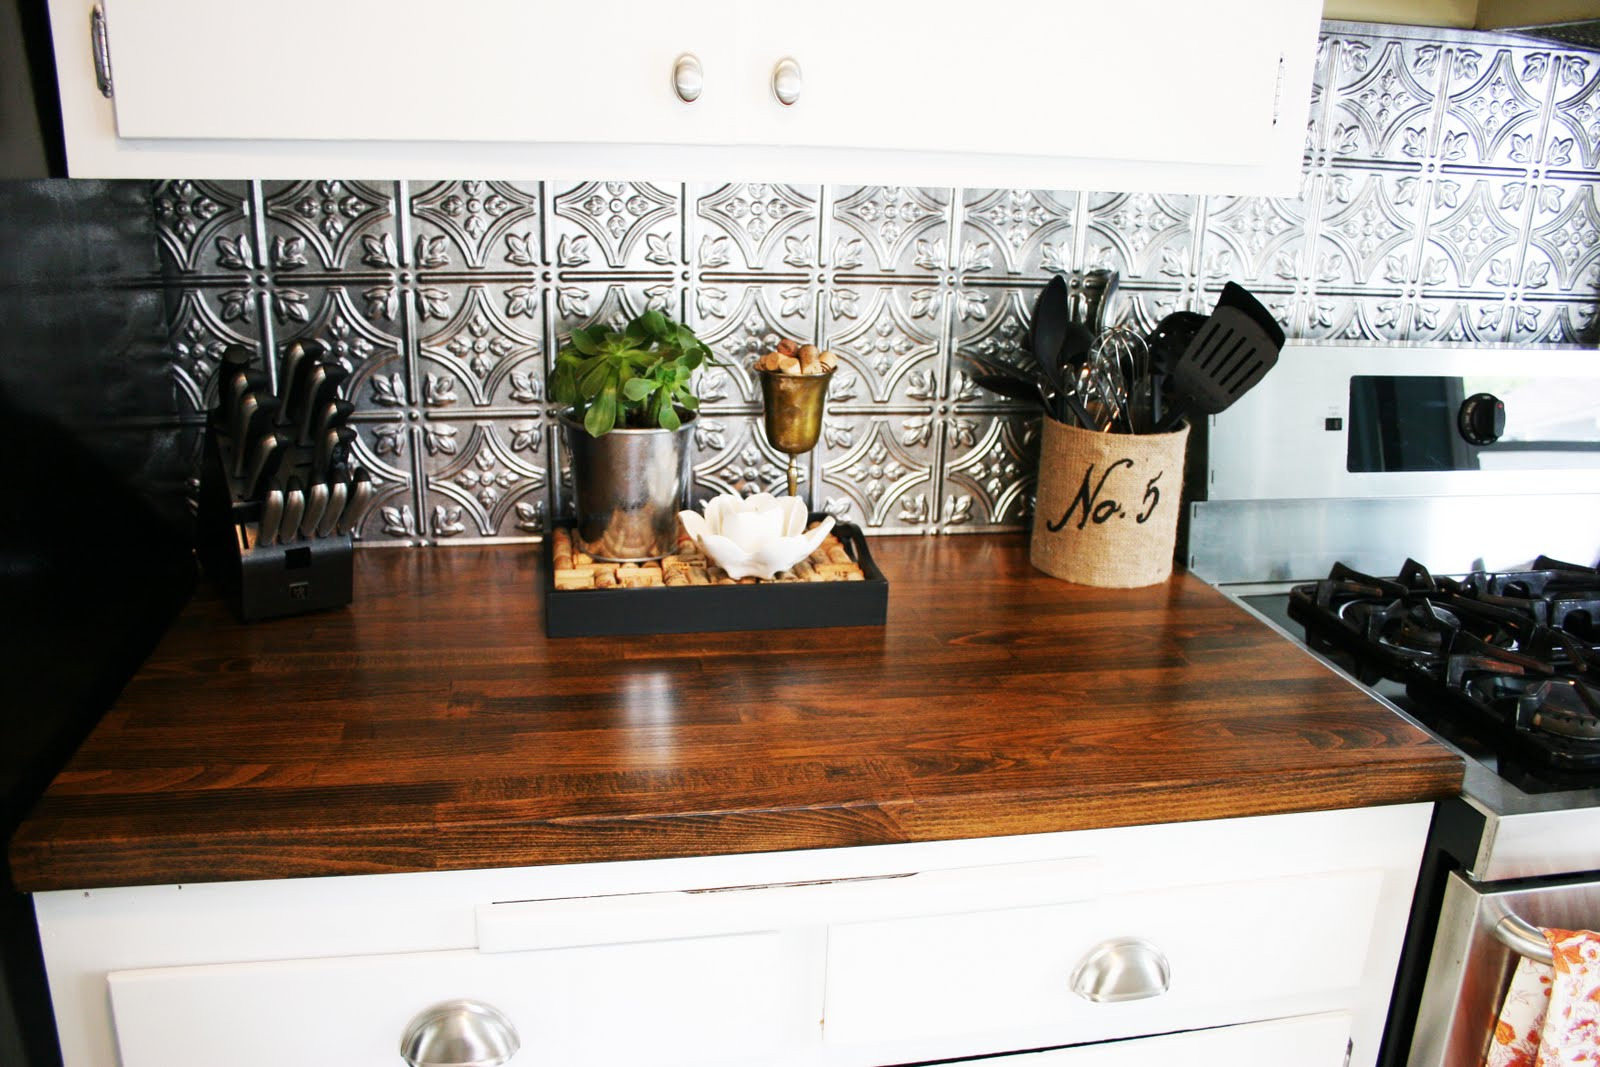 Best Backsplash For Butcher Block Countertops : Backsplash For Butcher Block Countertops #HQ79 ? Roccommunity